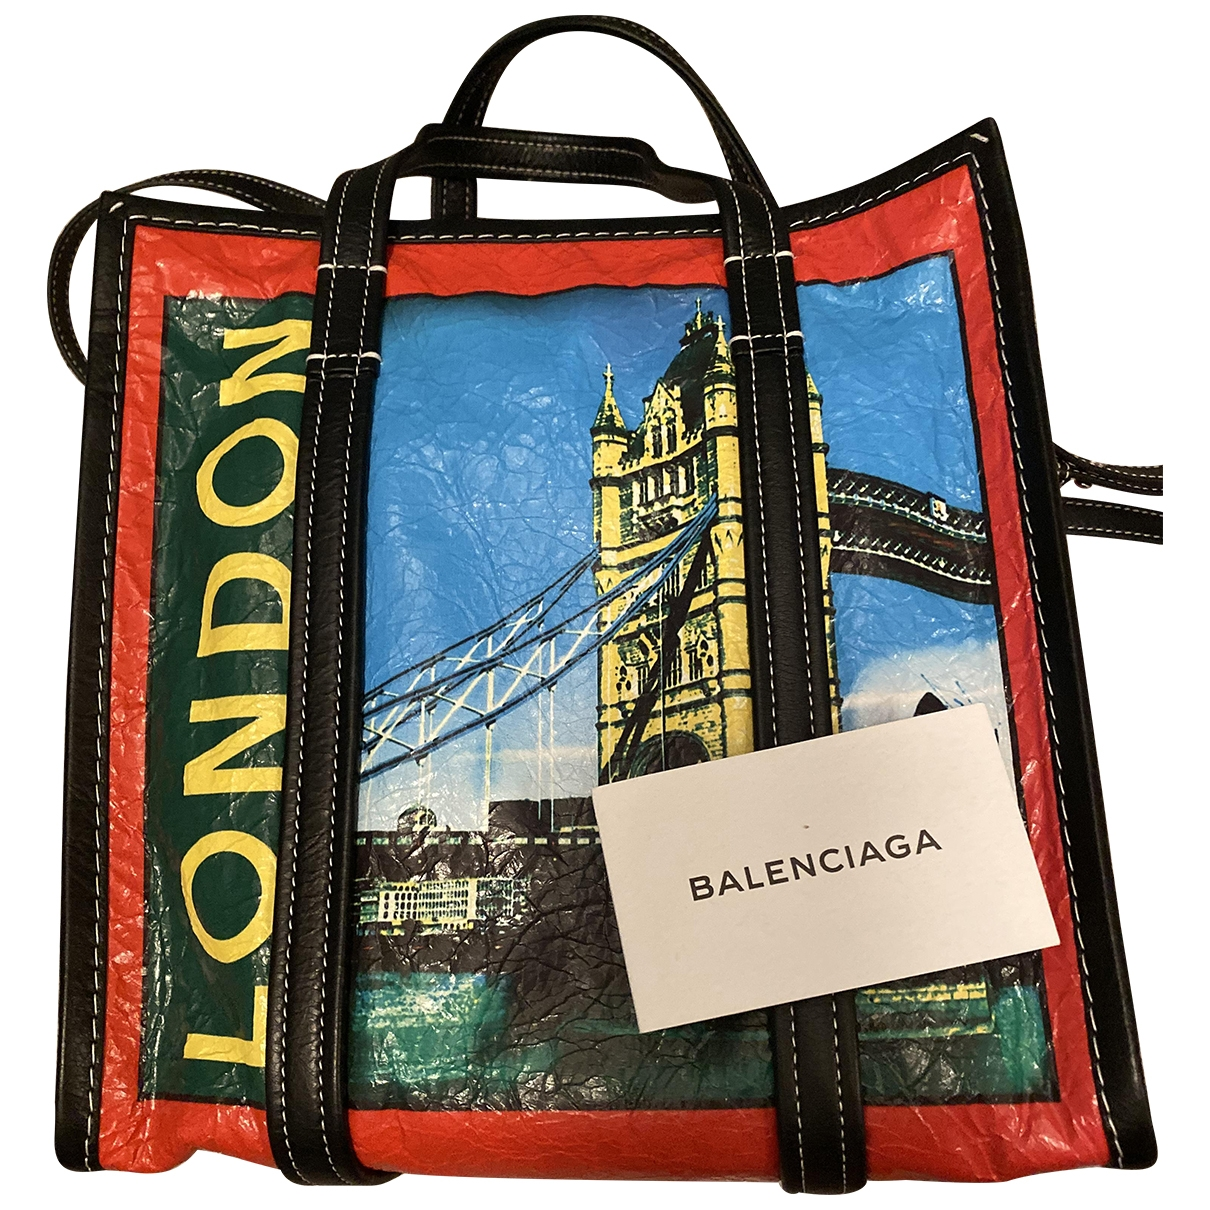 Balenciaga Bazar Bag Red Leather handbag for Women \N